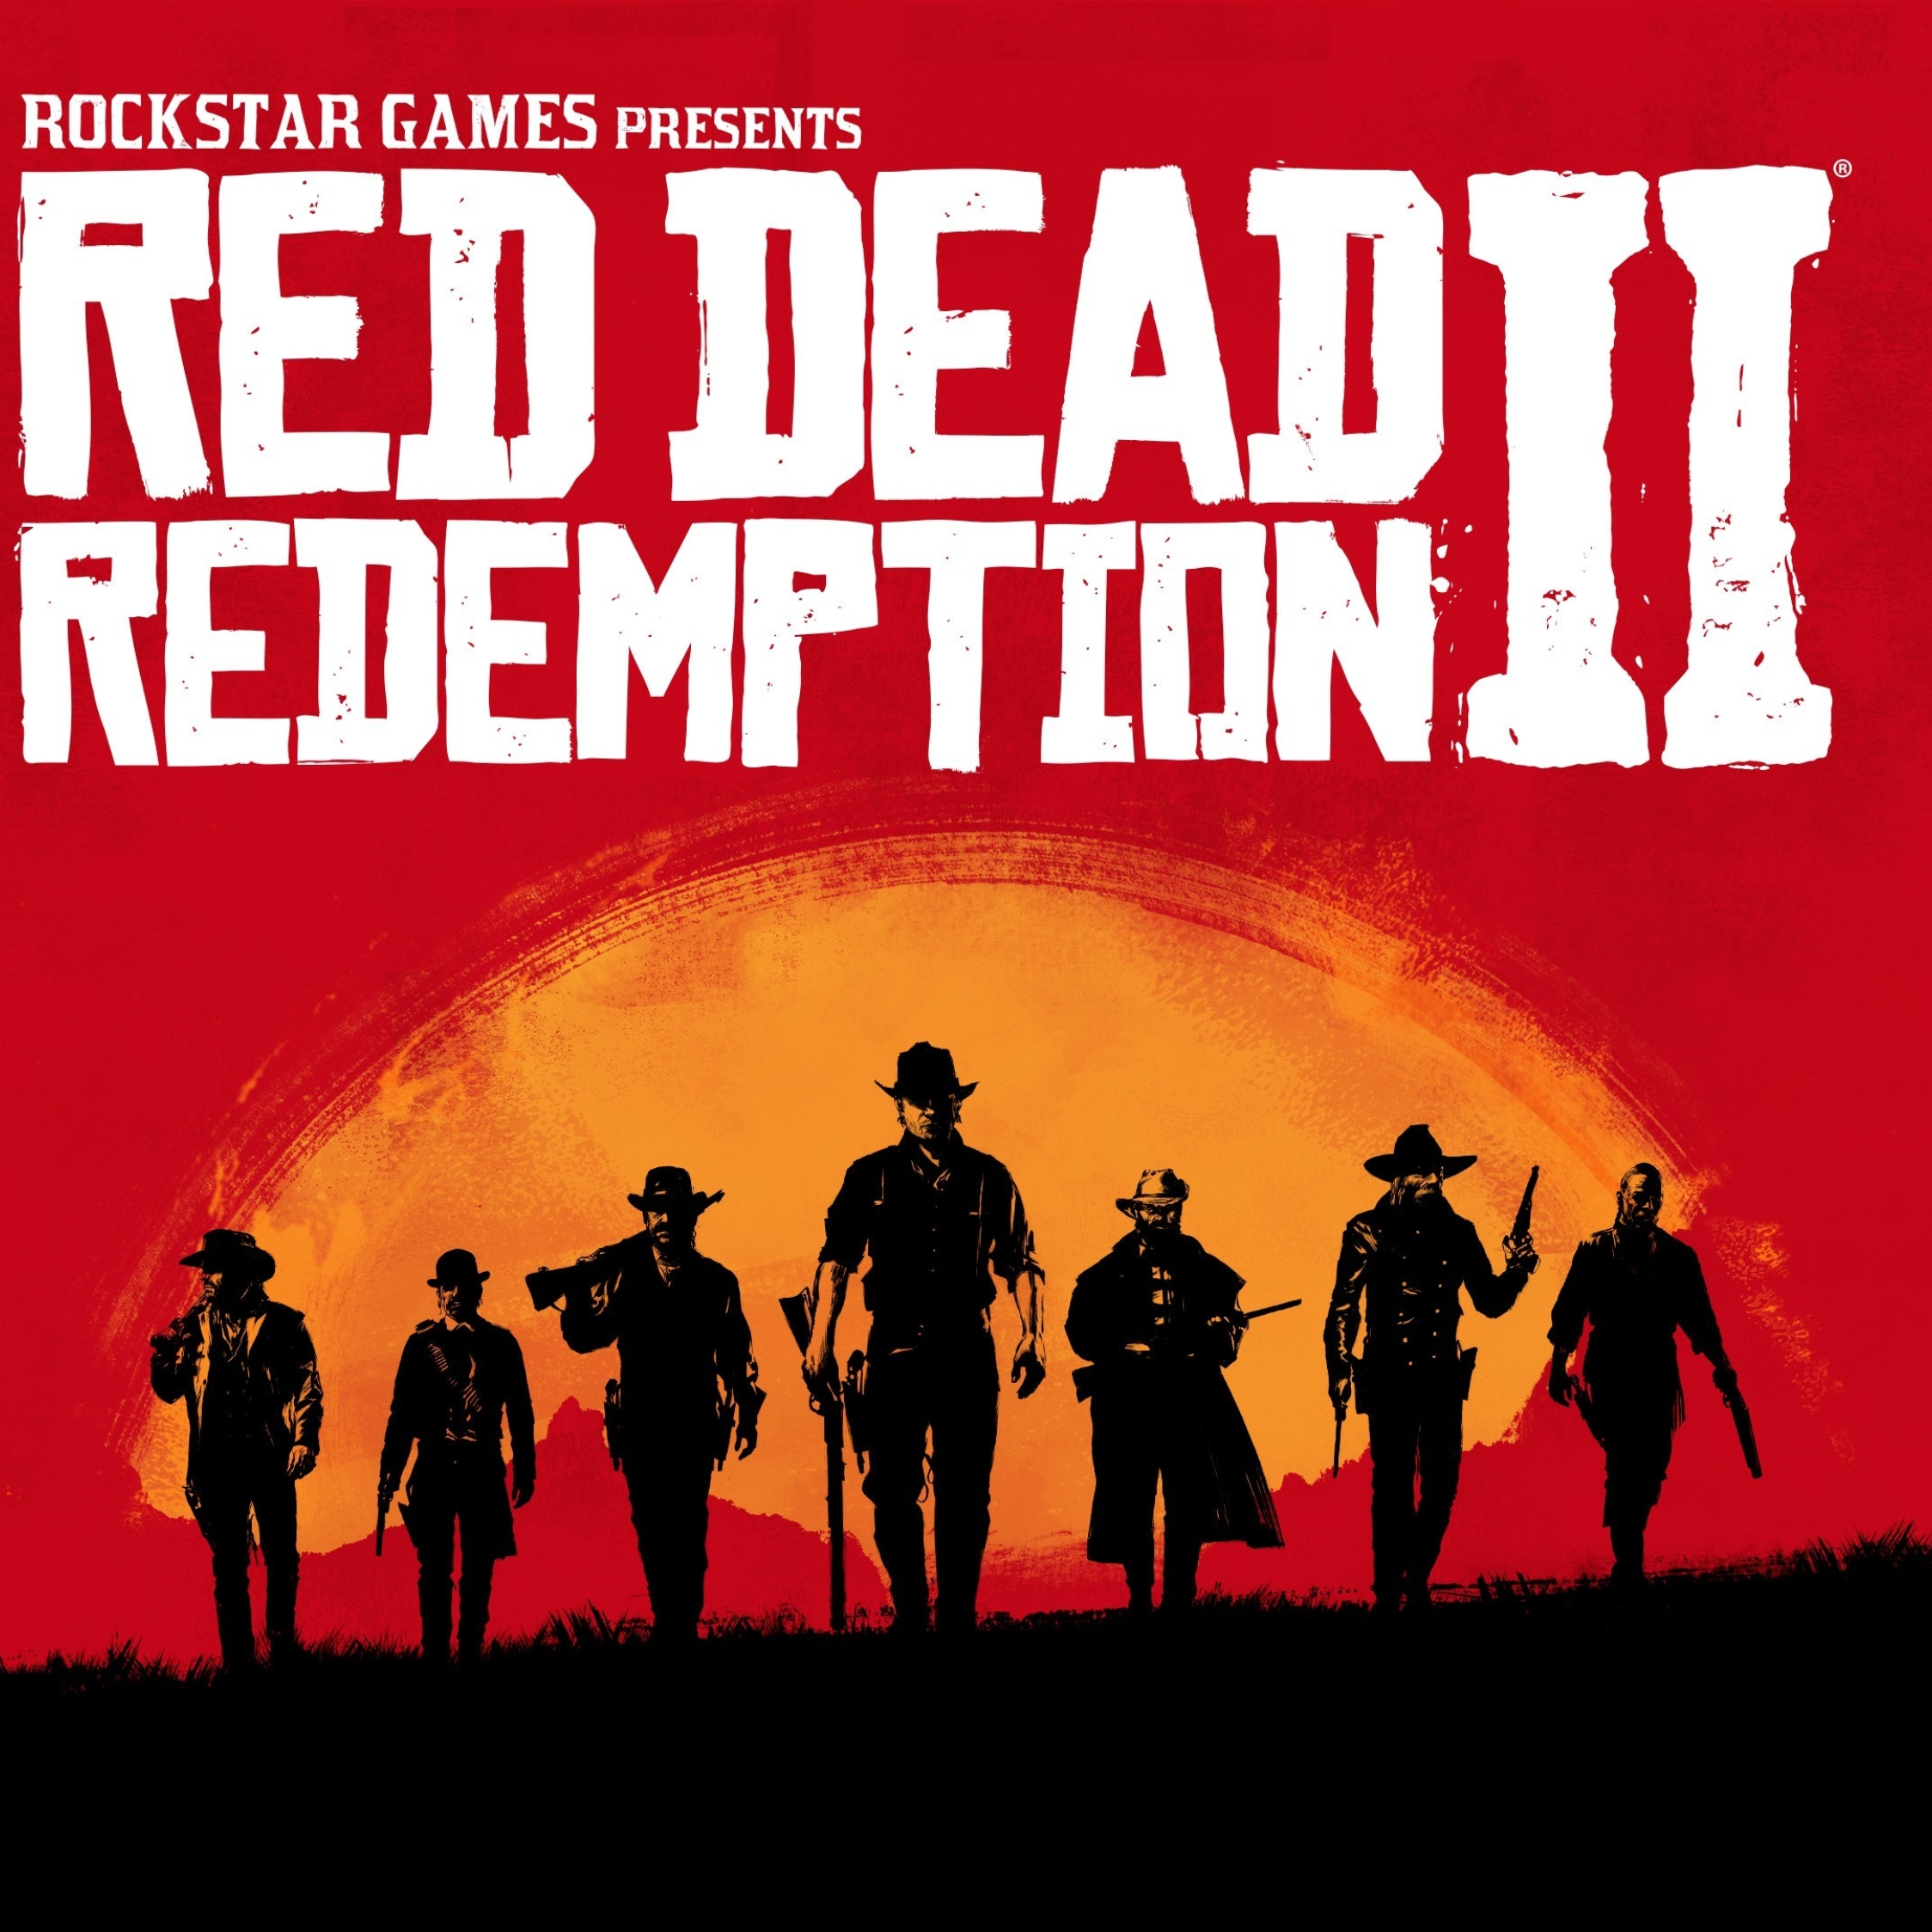 Red Dead Redemption Wallpaper Hd: 2018 Game Red Dead Redemption 2 Poster, HD 4K Wallpaper